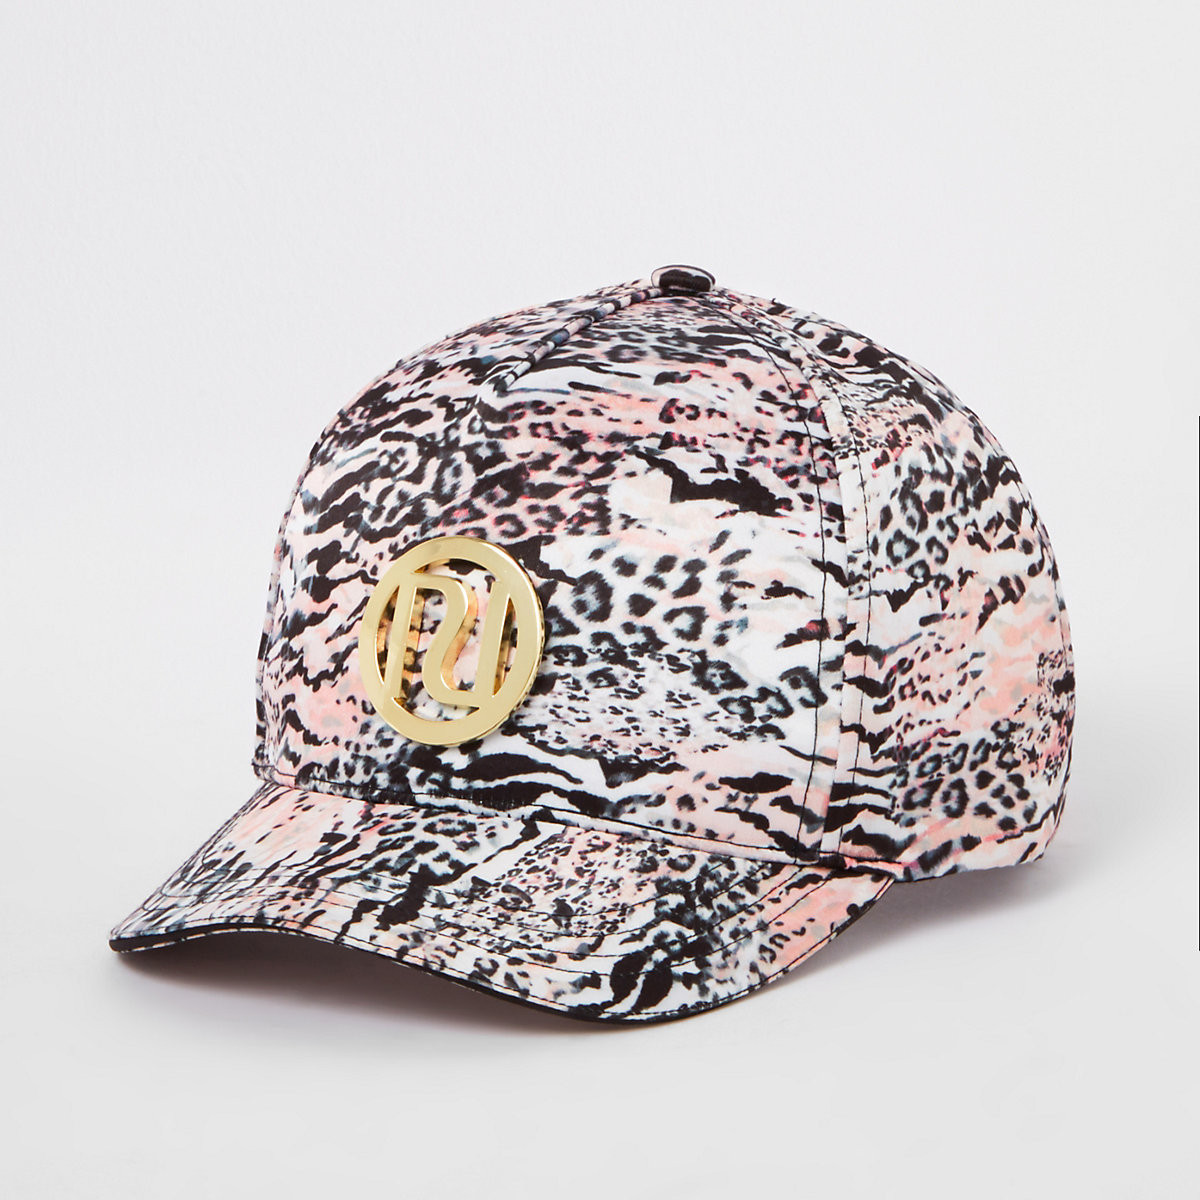 Girls pink leopard print RI cap - Hats - Accessories - girls 7c15f5102f6b